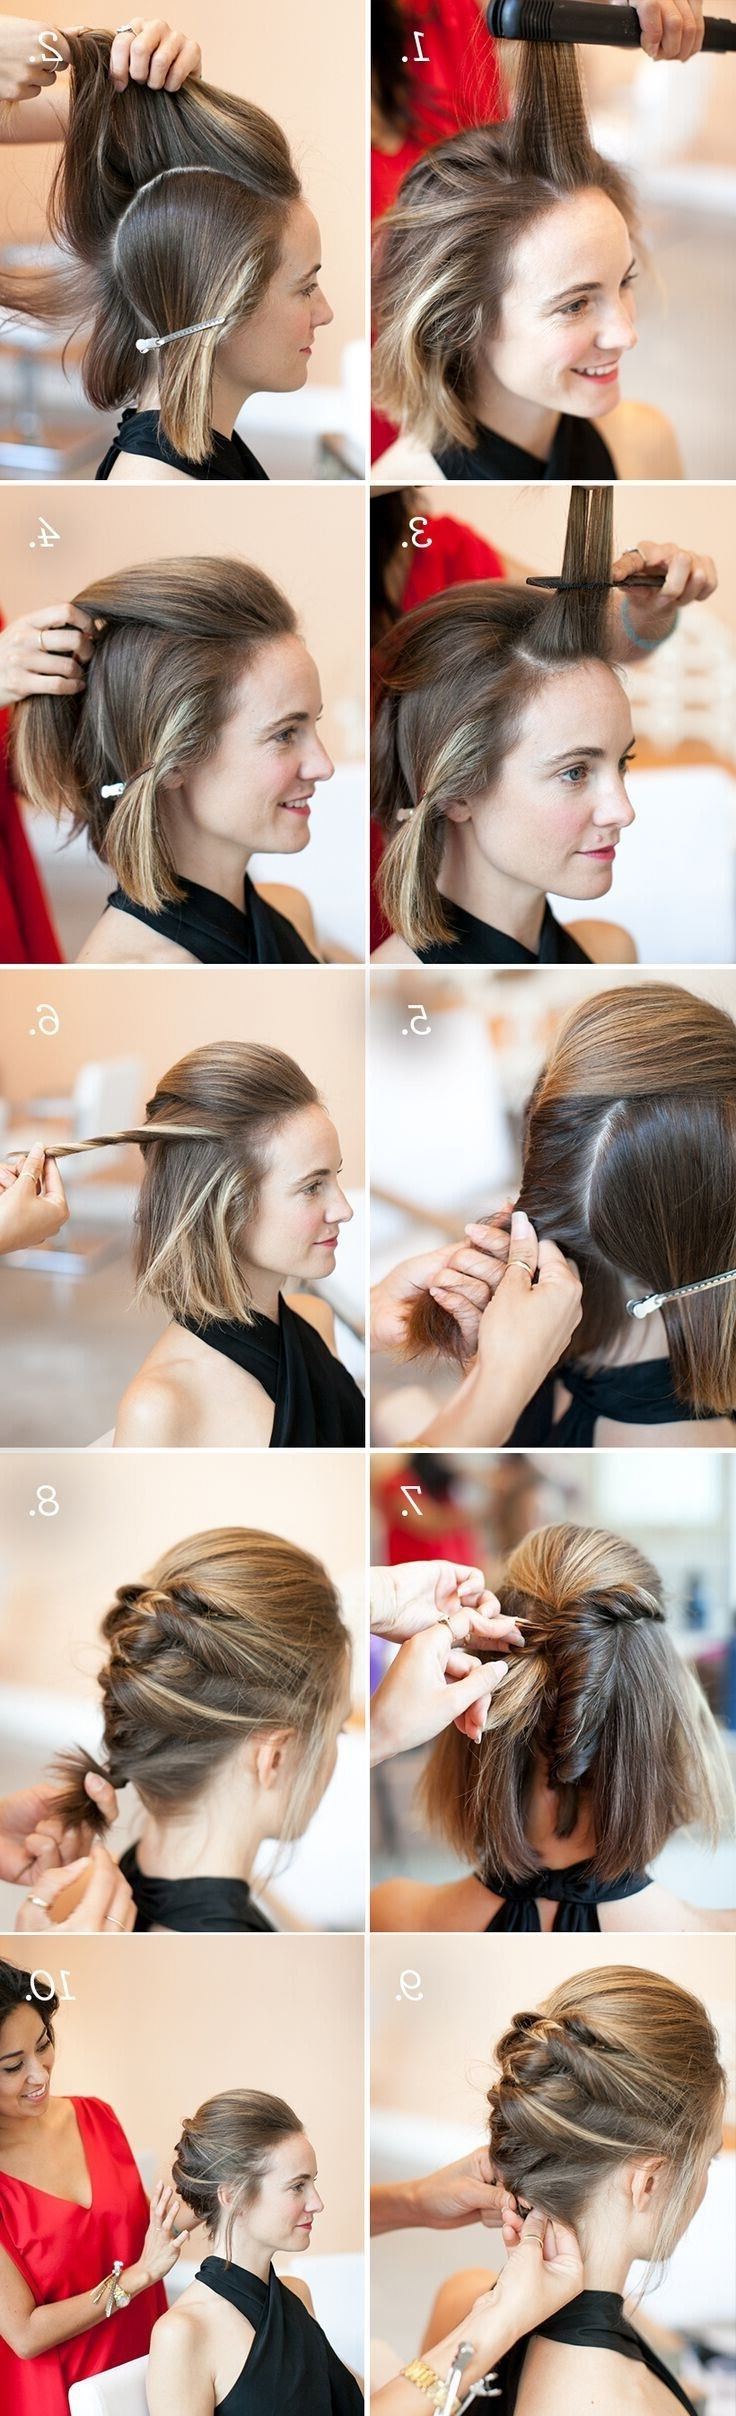 Favorite Braided Updo Hairstyles For Short Hair With Regard To 22 Gorgeous Braided Updo Hairstyles – Pretty Designs (View 6 of 15)